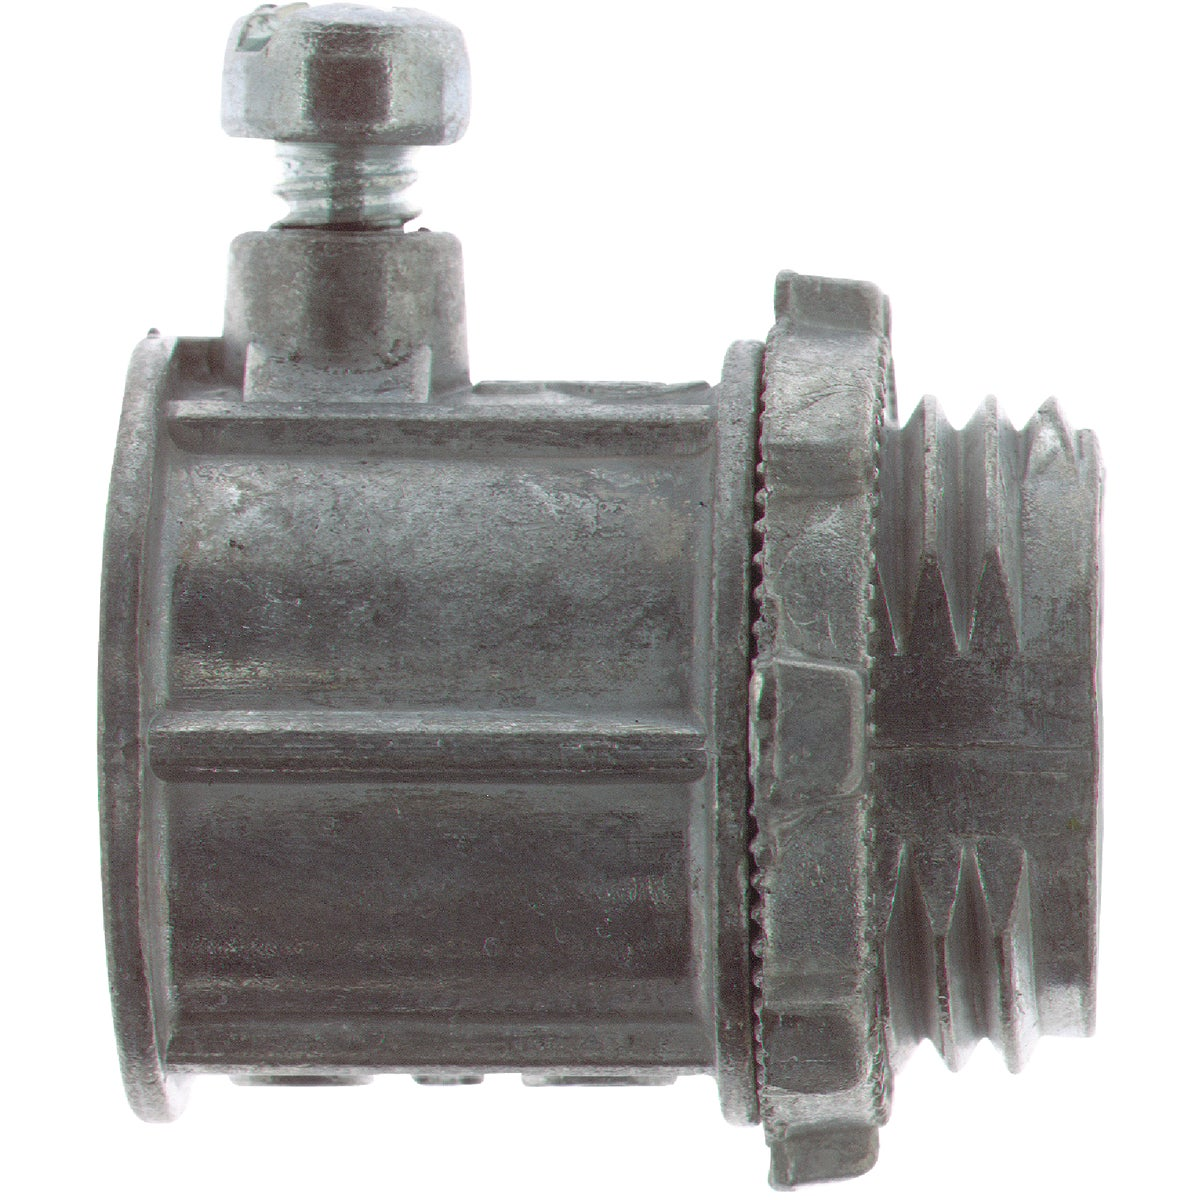 "1-1/4"" EMT CONNECTOR - TC224SC1 by Thomas & Betts"